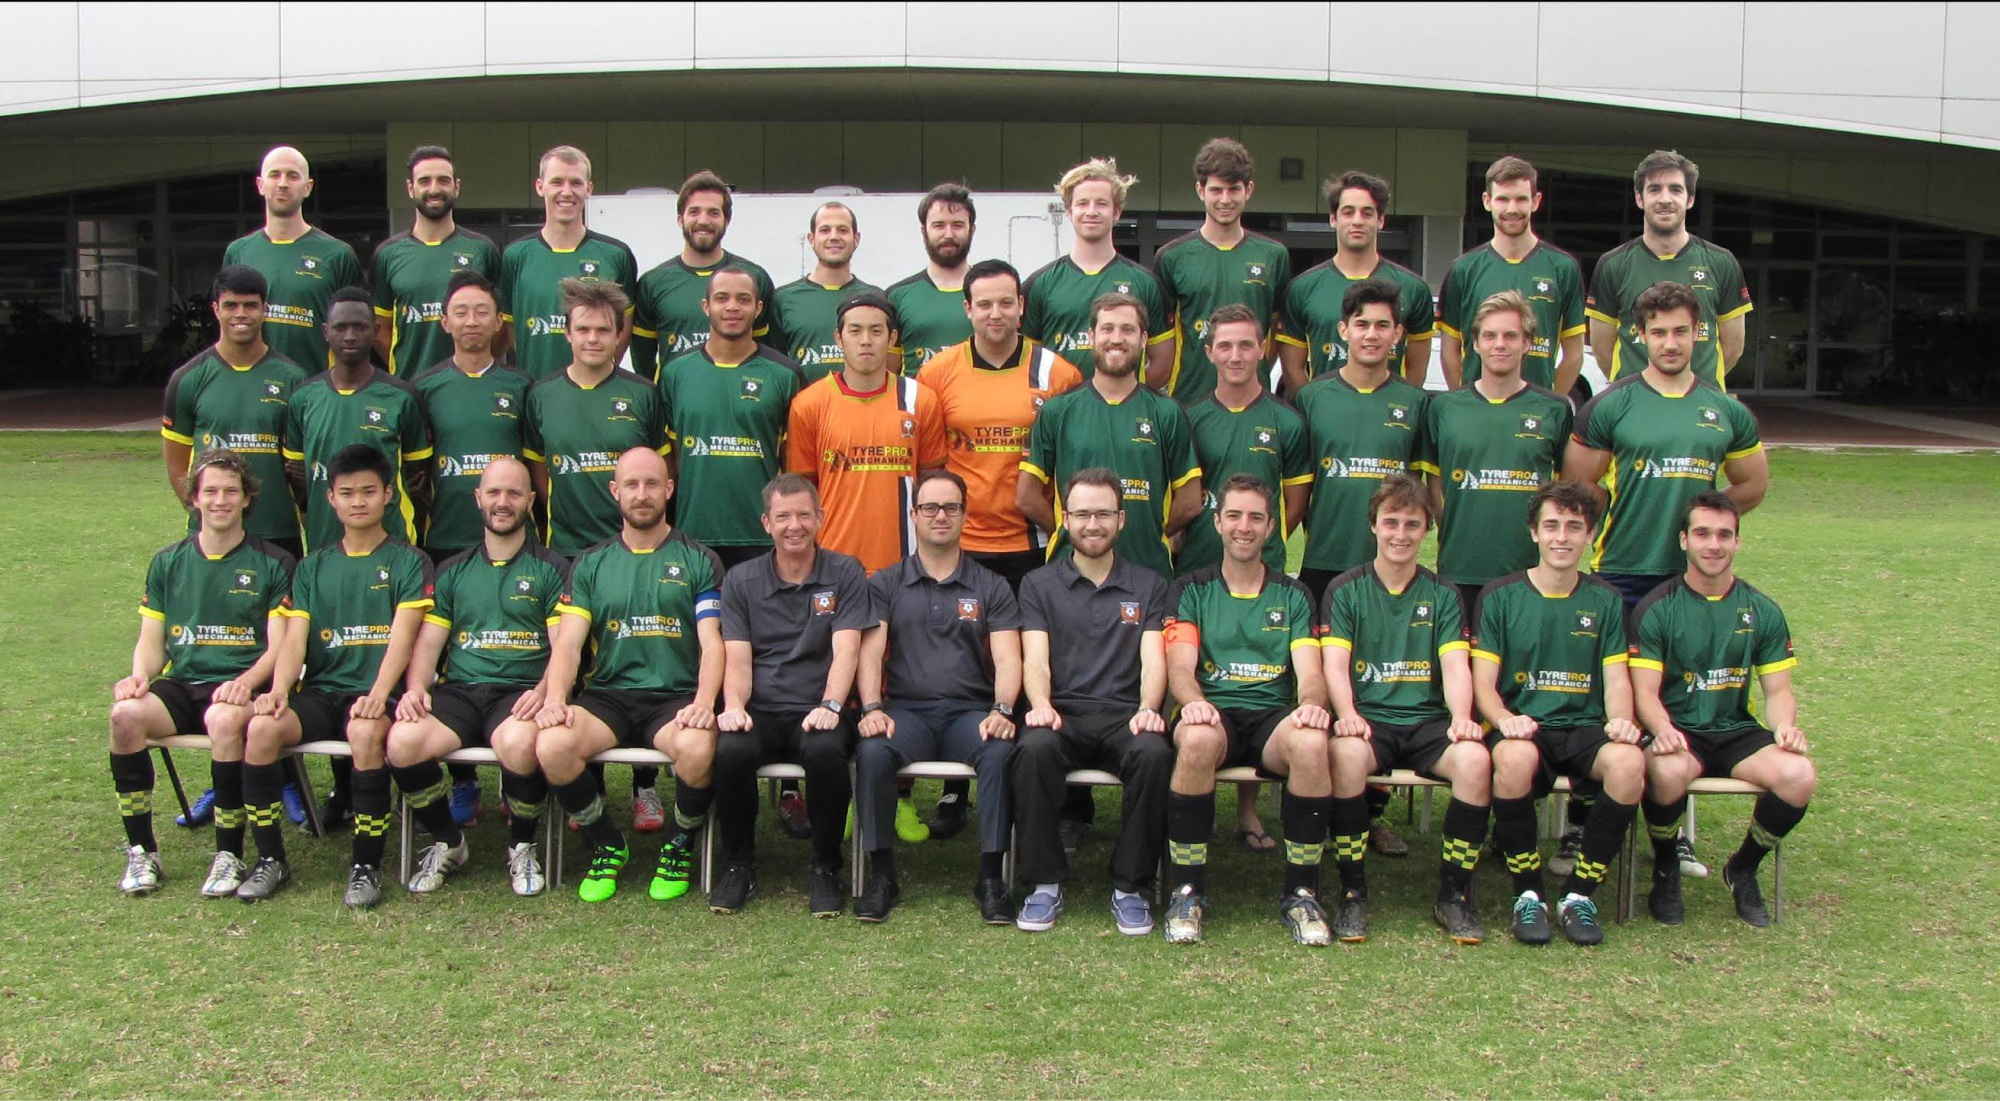 Soccer: Curtin University FC takes out title and gains promotion